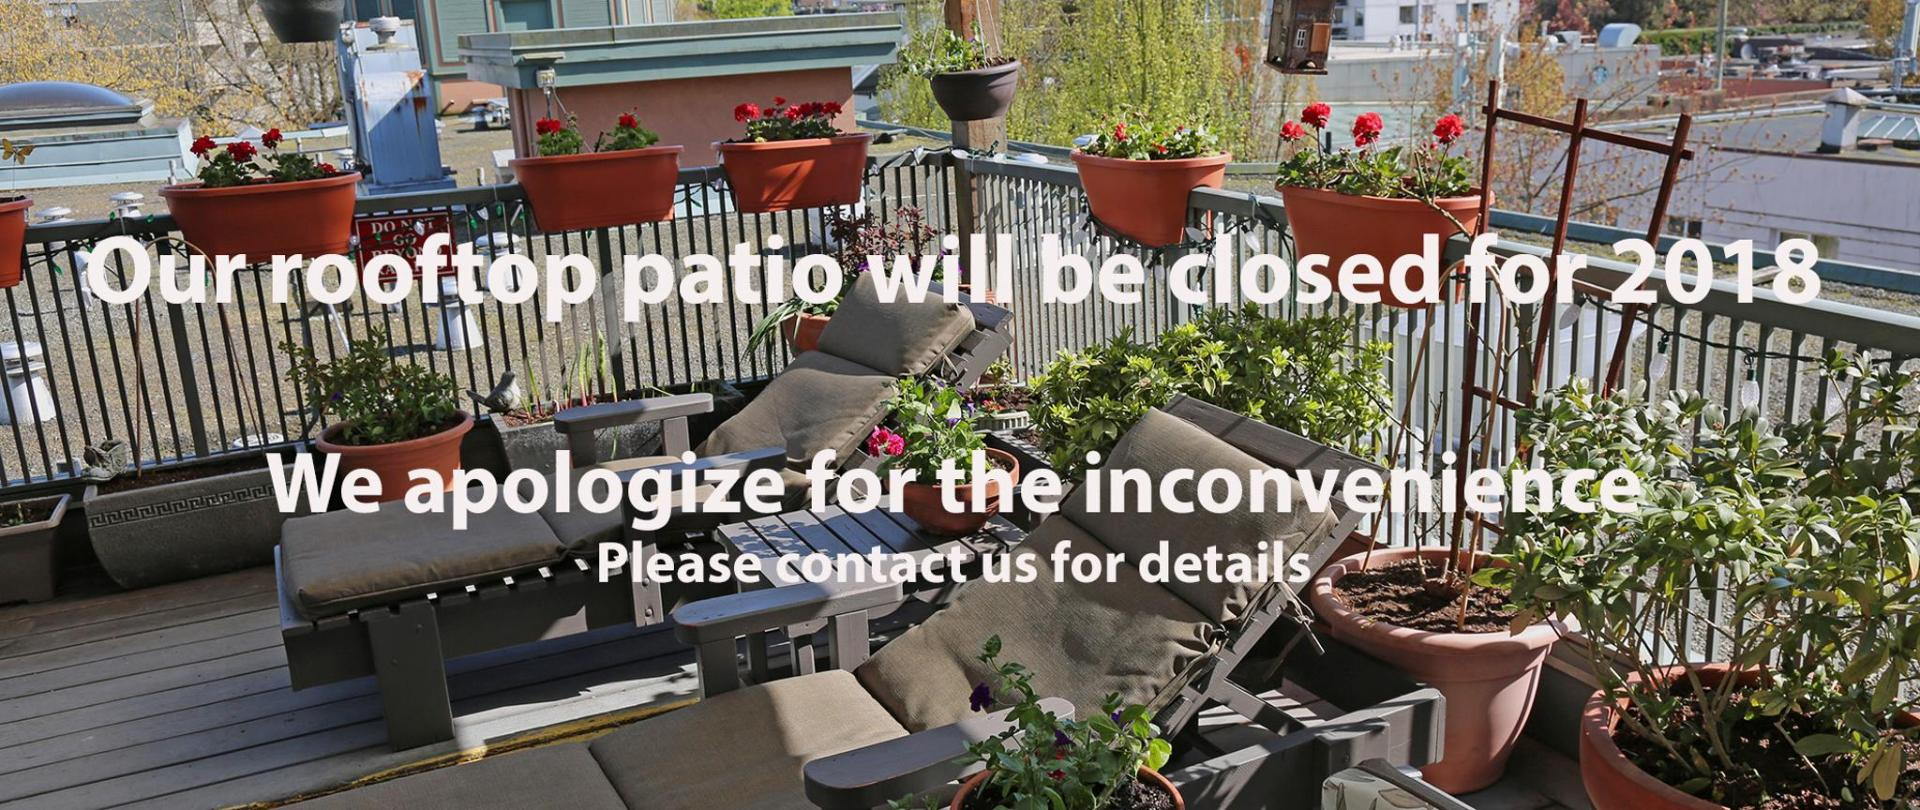 rooftop patio closure.jpg